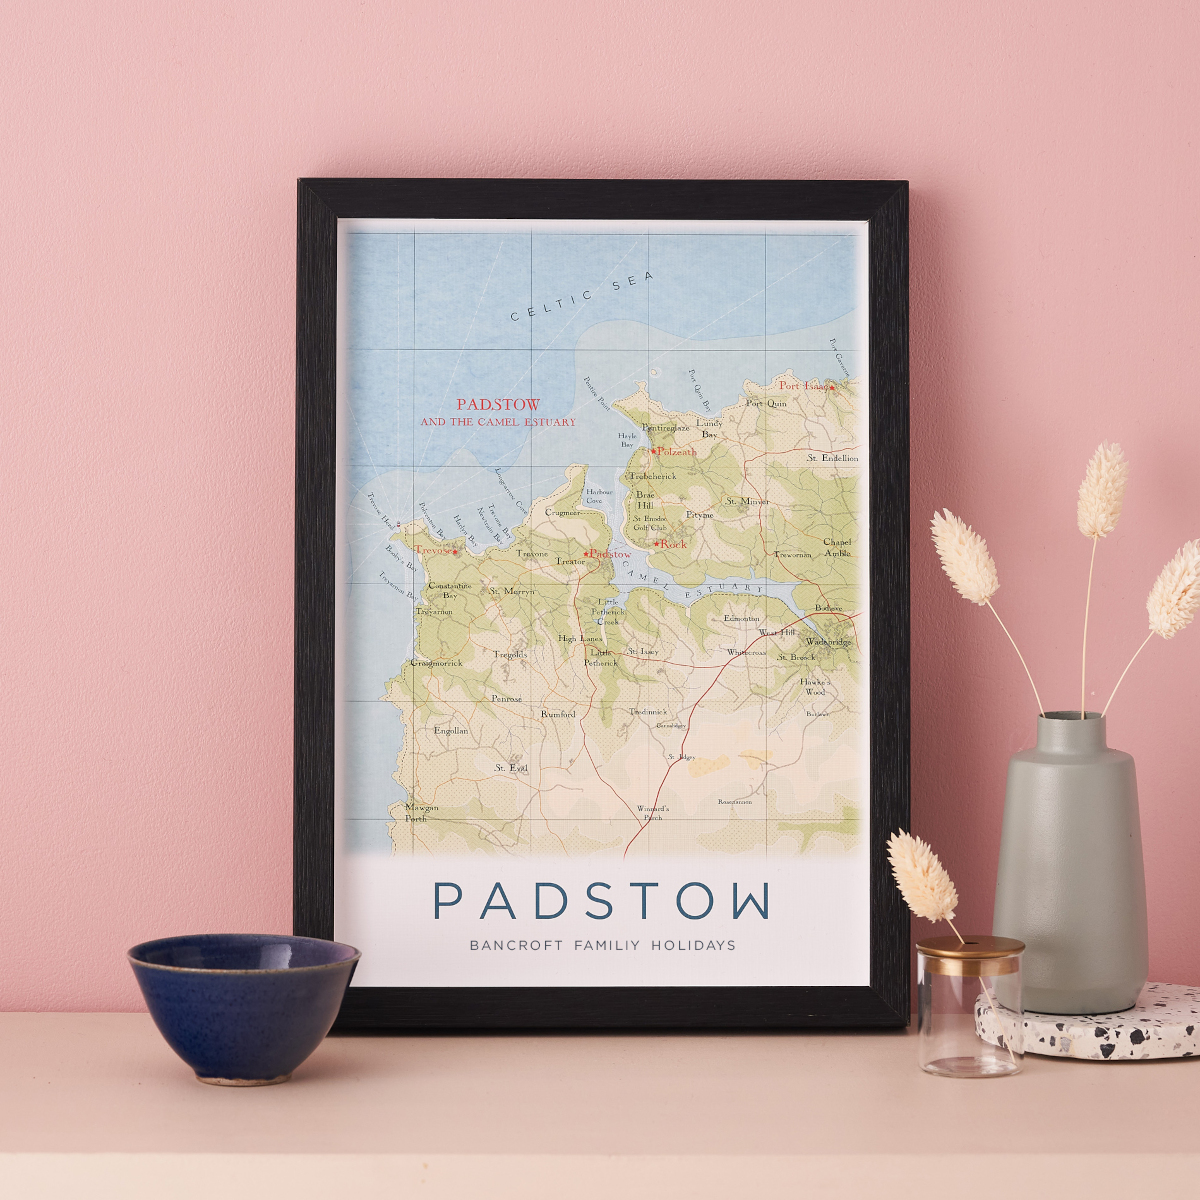 Map of Padstow - the location for a lot of people moving to a new home in 2021